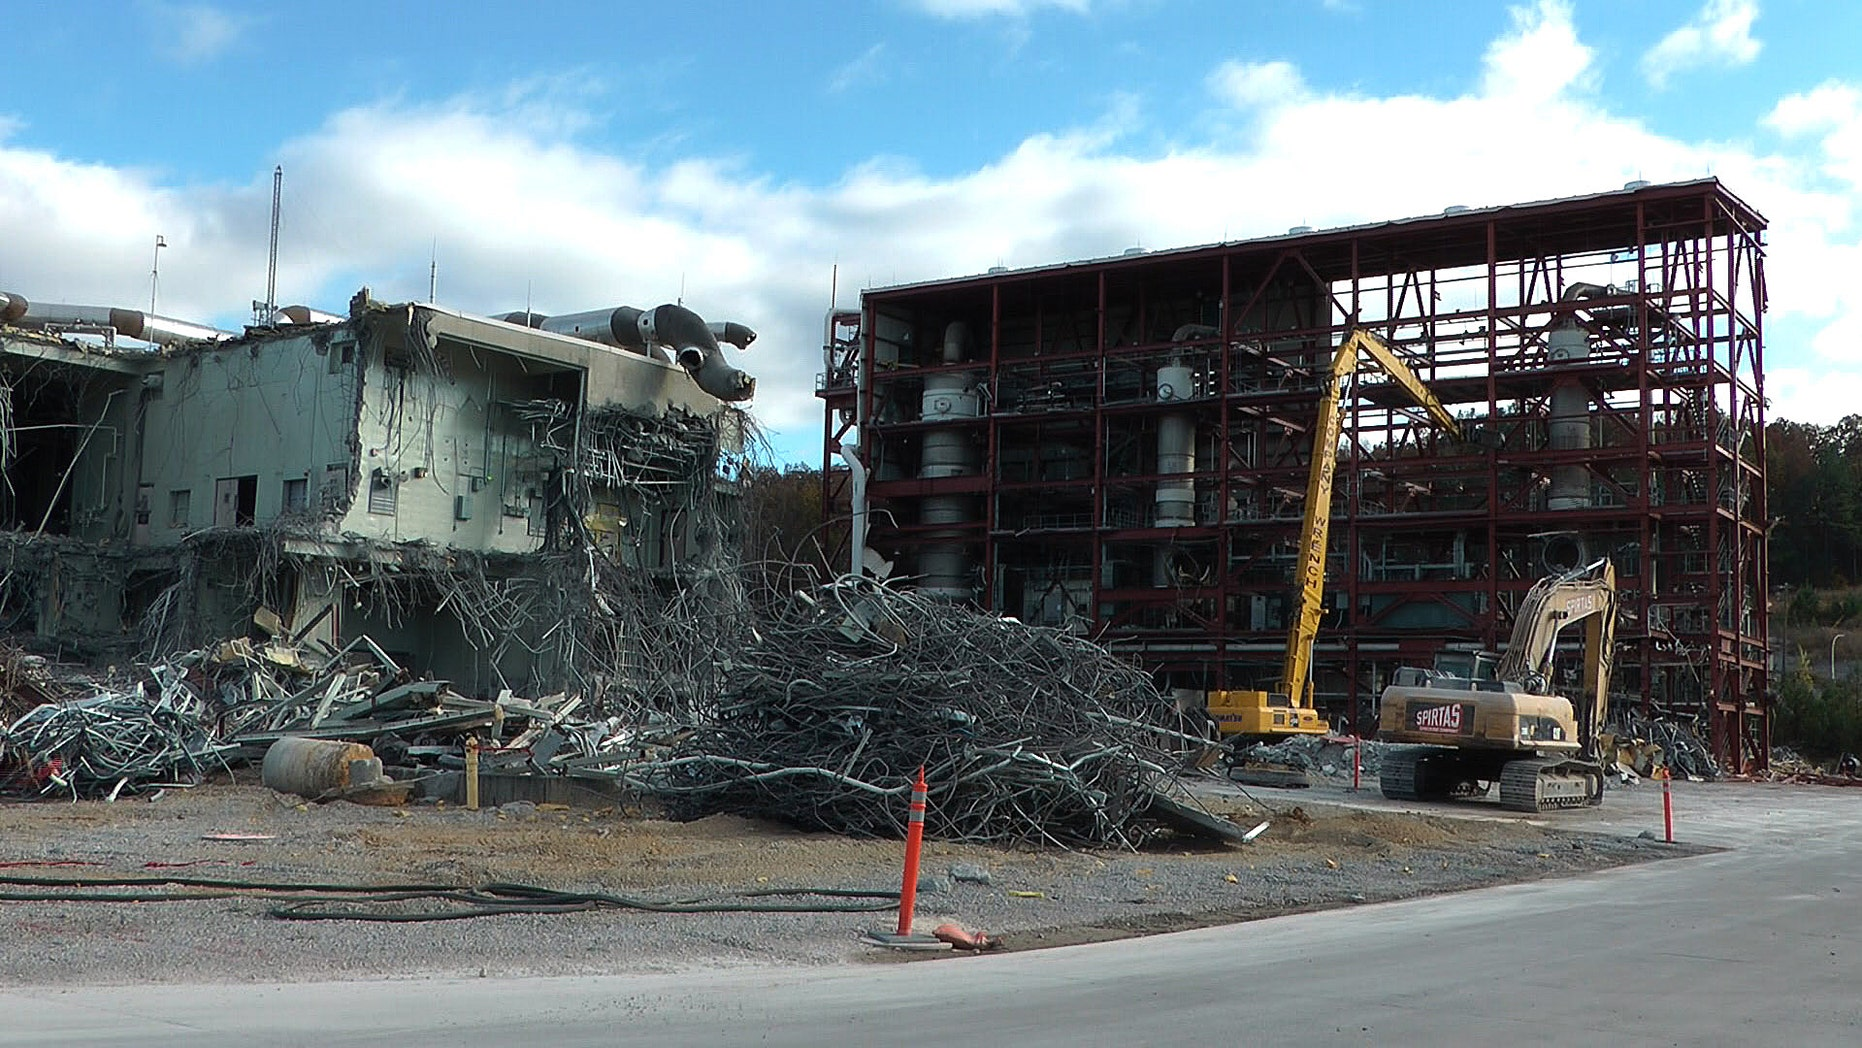 Nov. 12, 2013: In this photo workers continue the process of demolishing chemical waste incinerator at the Anniston Army Depot in Anniston, Ala.